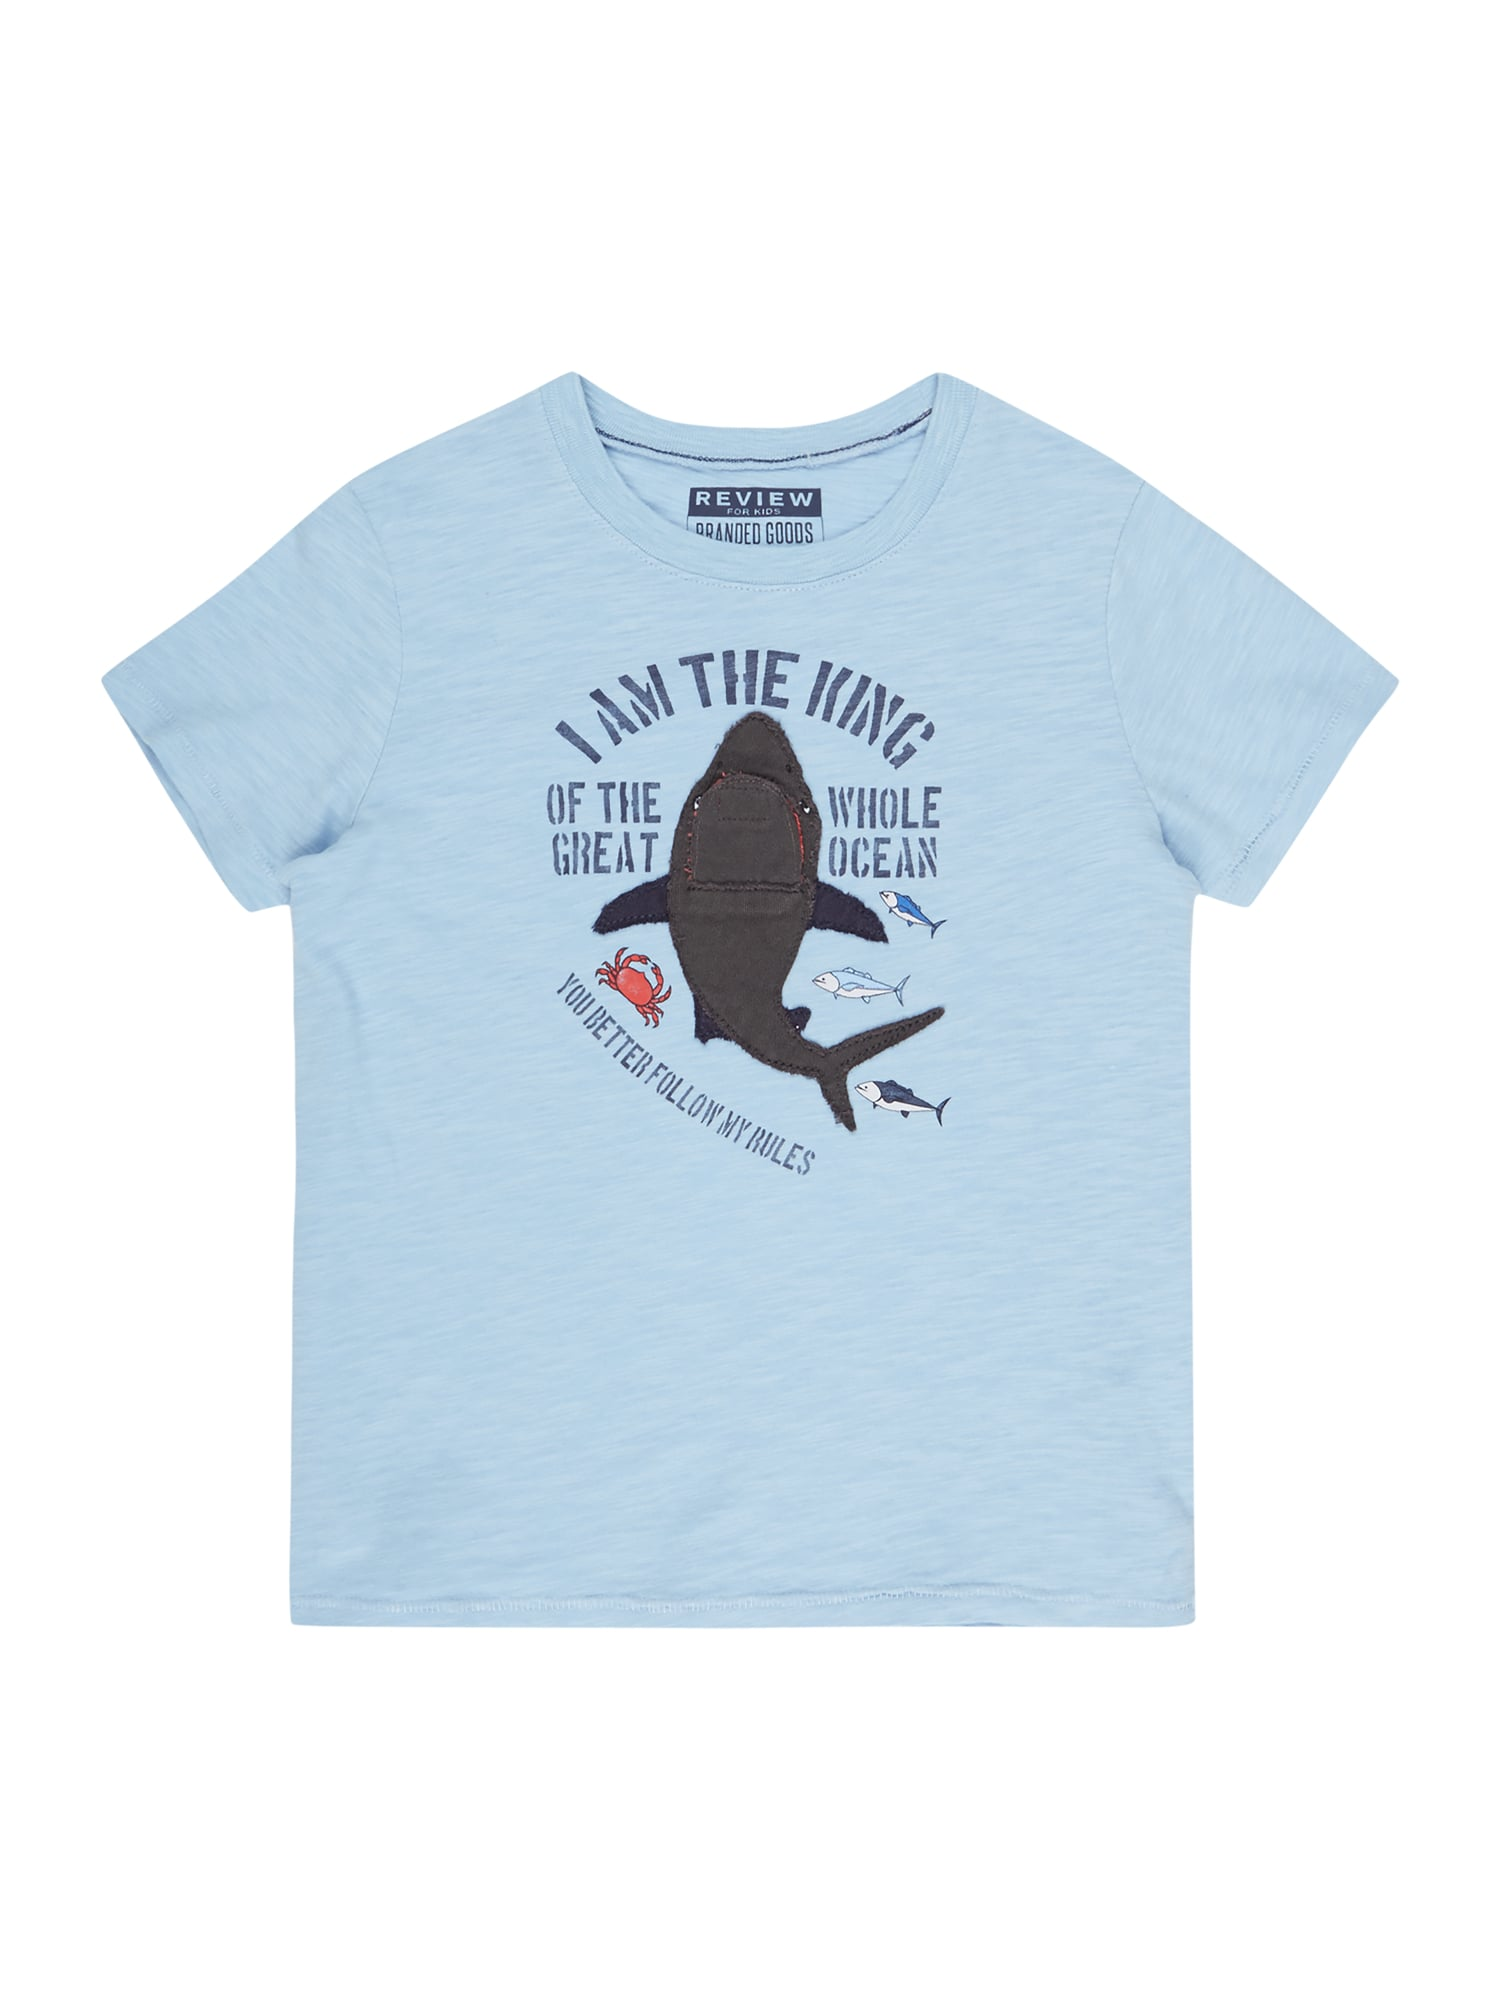 Find wide range of cool, quirky, trending, and funny The Mountain's kids t-shirt collection including Kids T Shirts, Kids Animal T-Shirts Online at best prices.